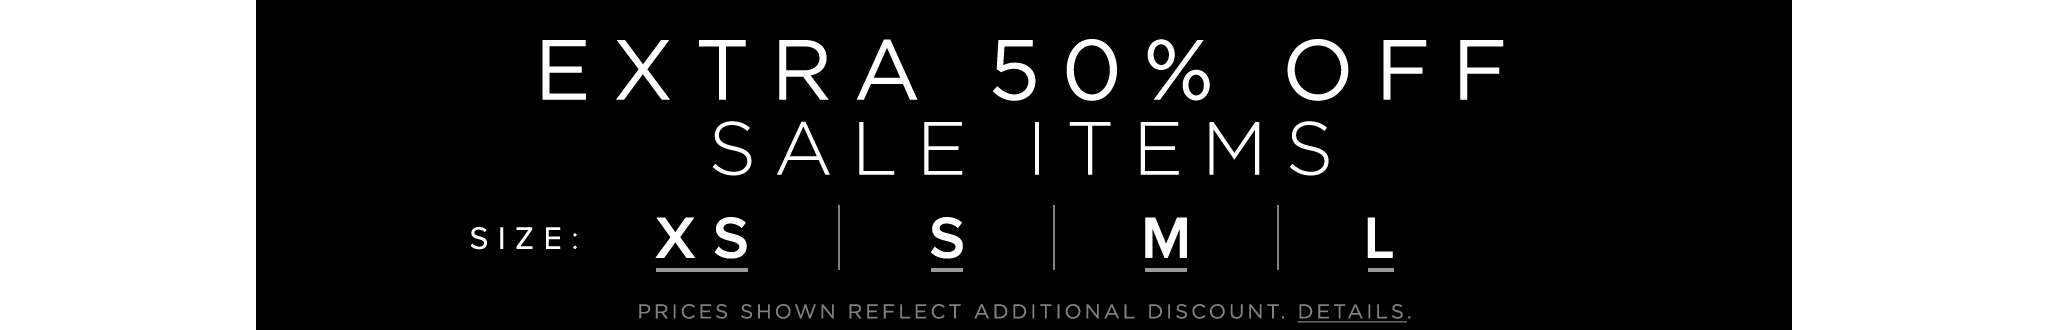 Extra 50 Off Sale Items